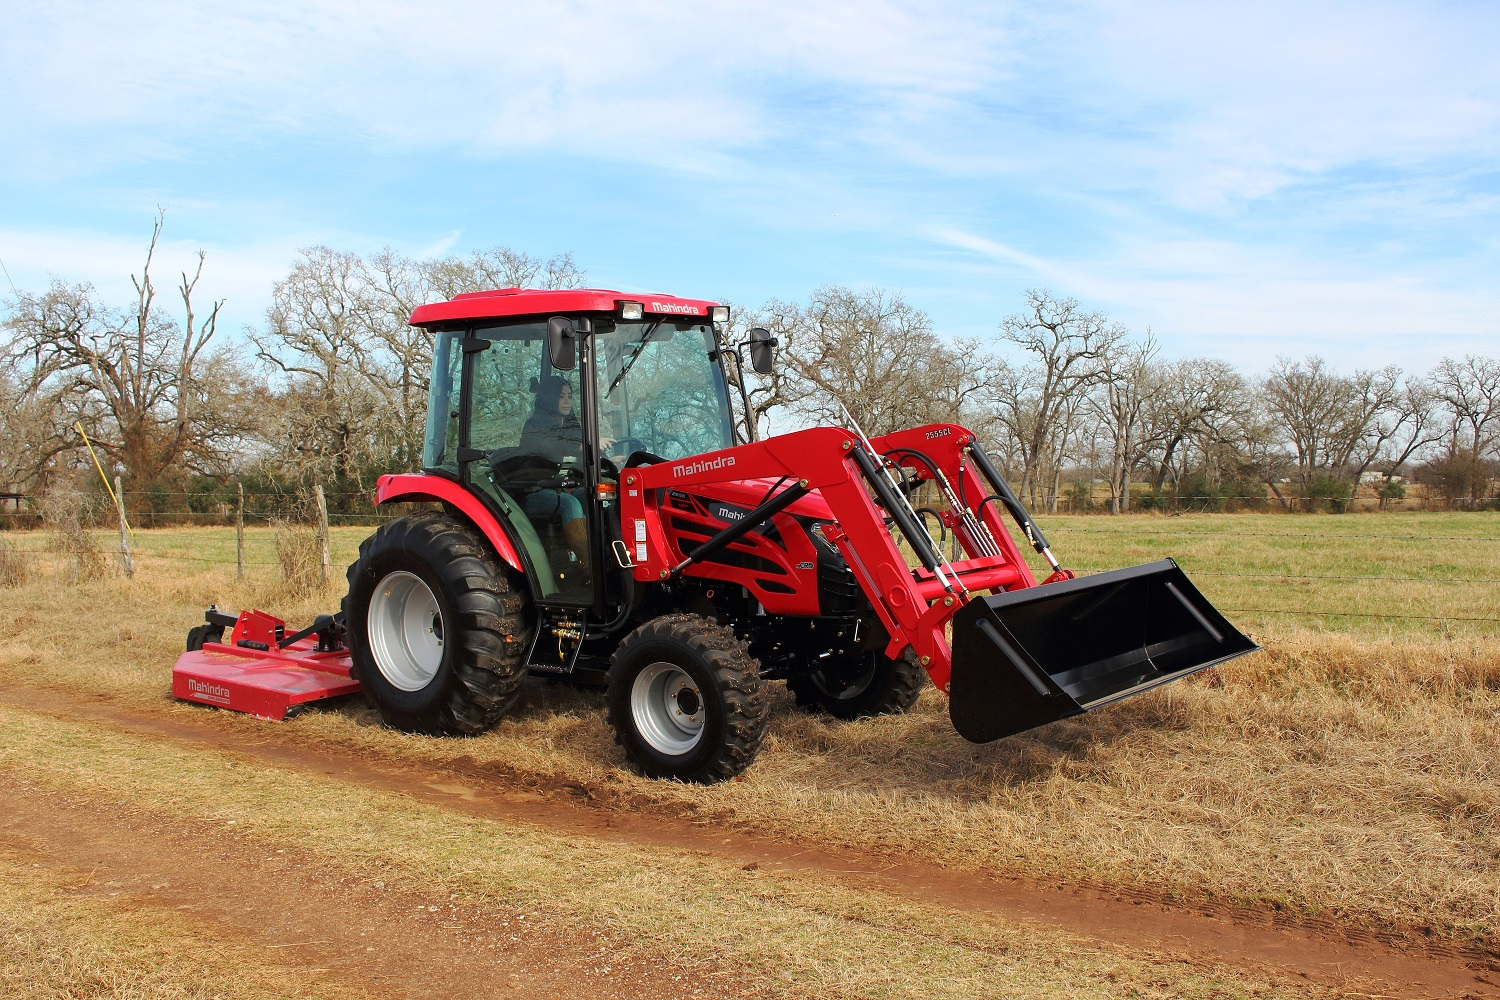 Mahindra Usa Updates 2500 Tractor Series 2015 05 11